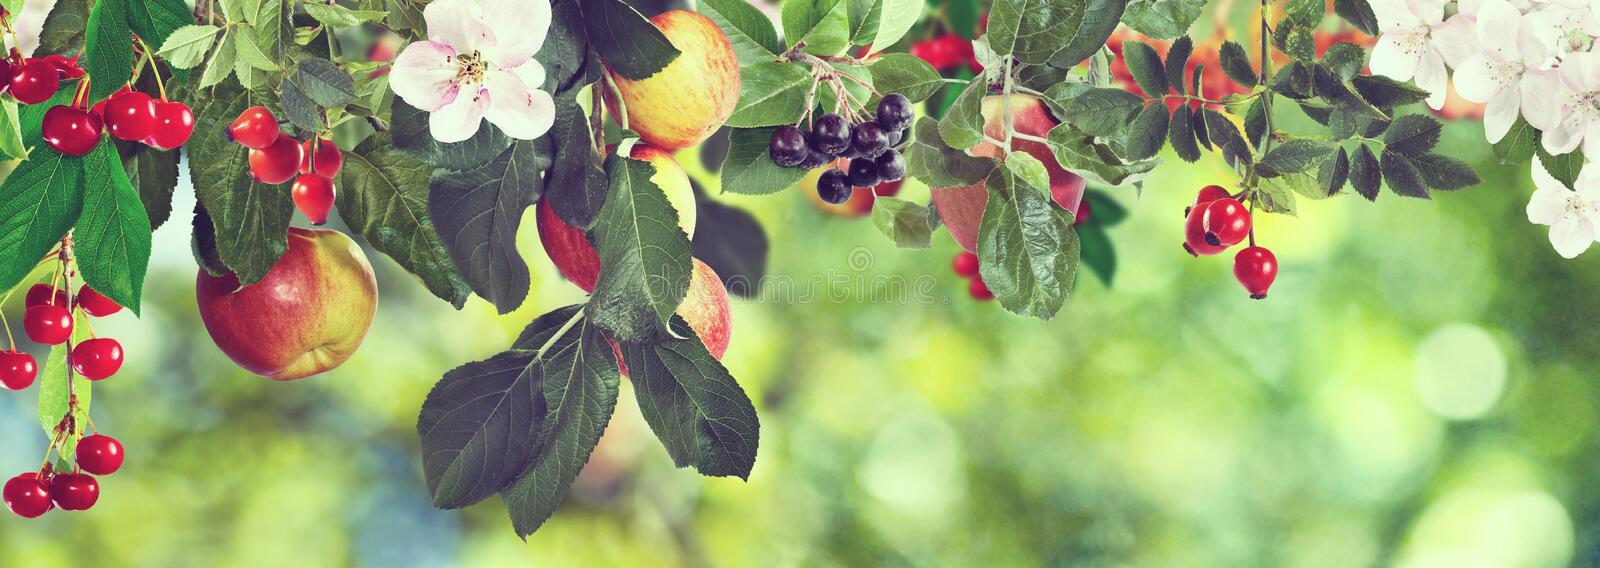 Image of sweet apples and cherries on a tree, stock image